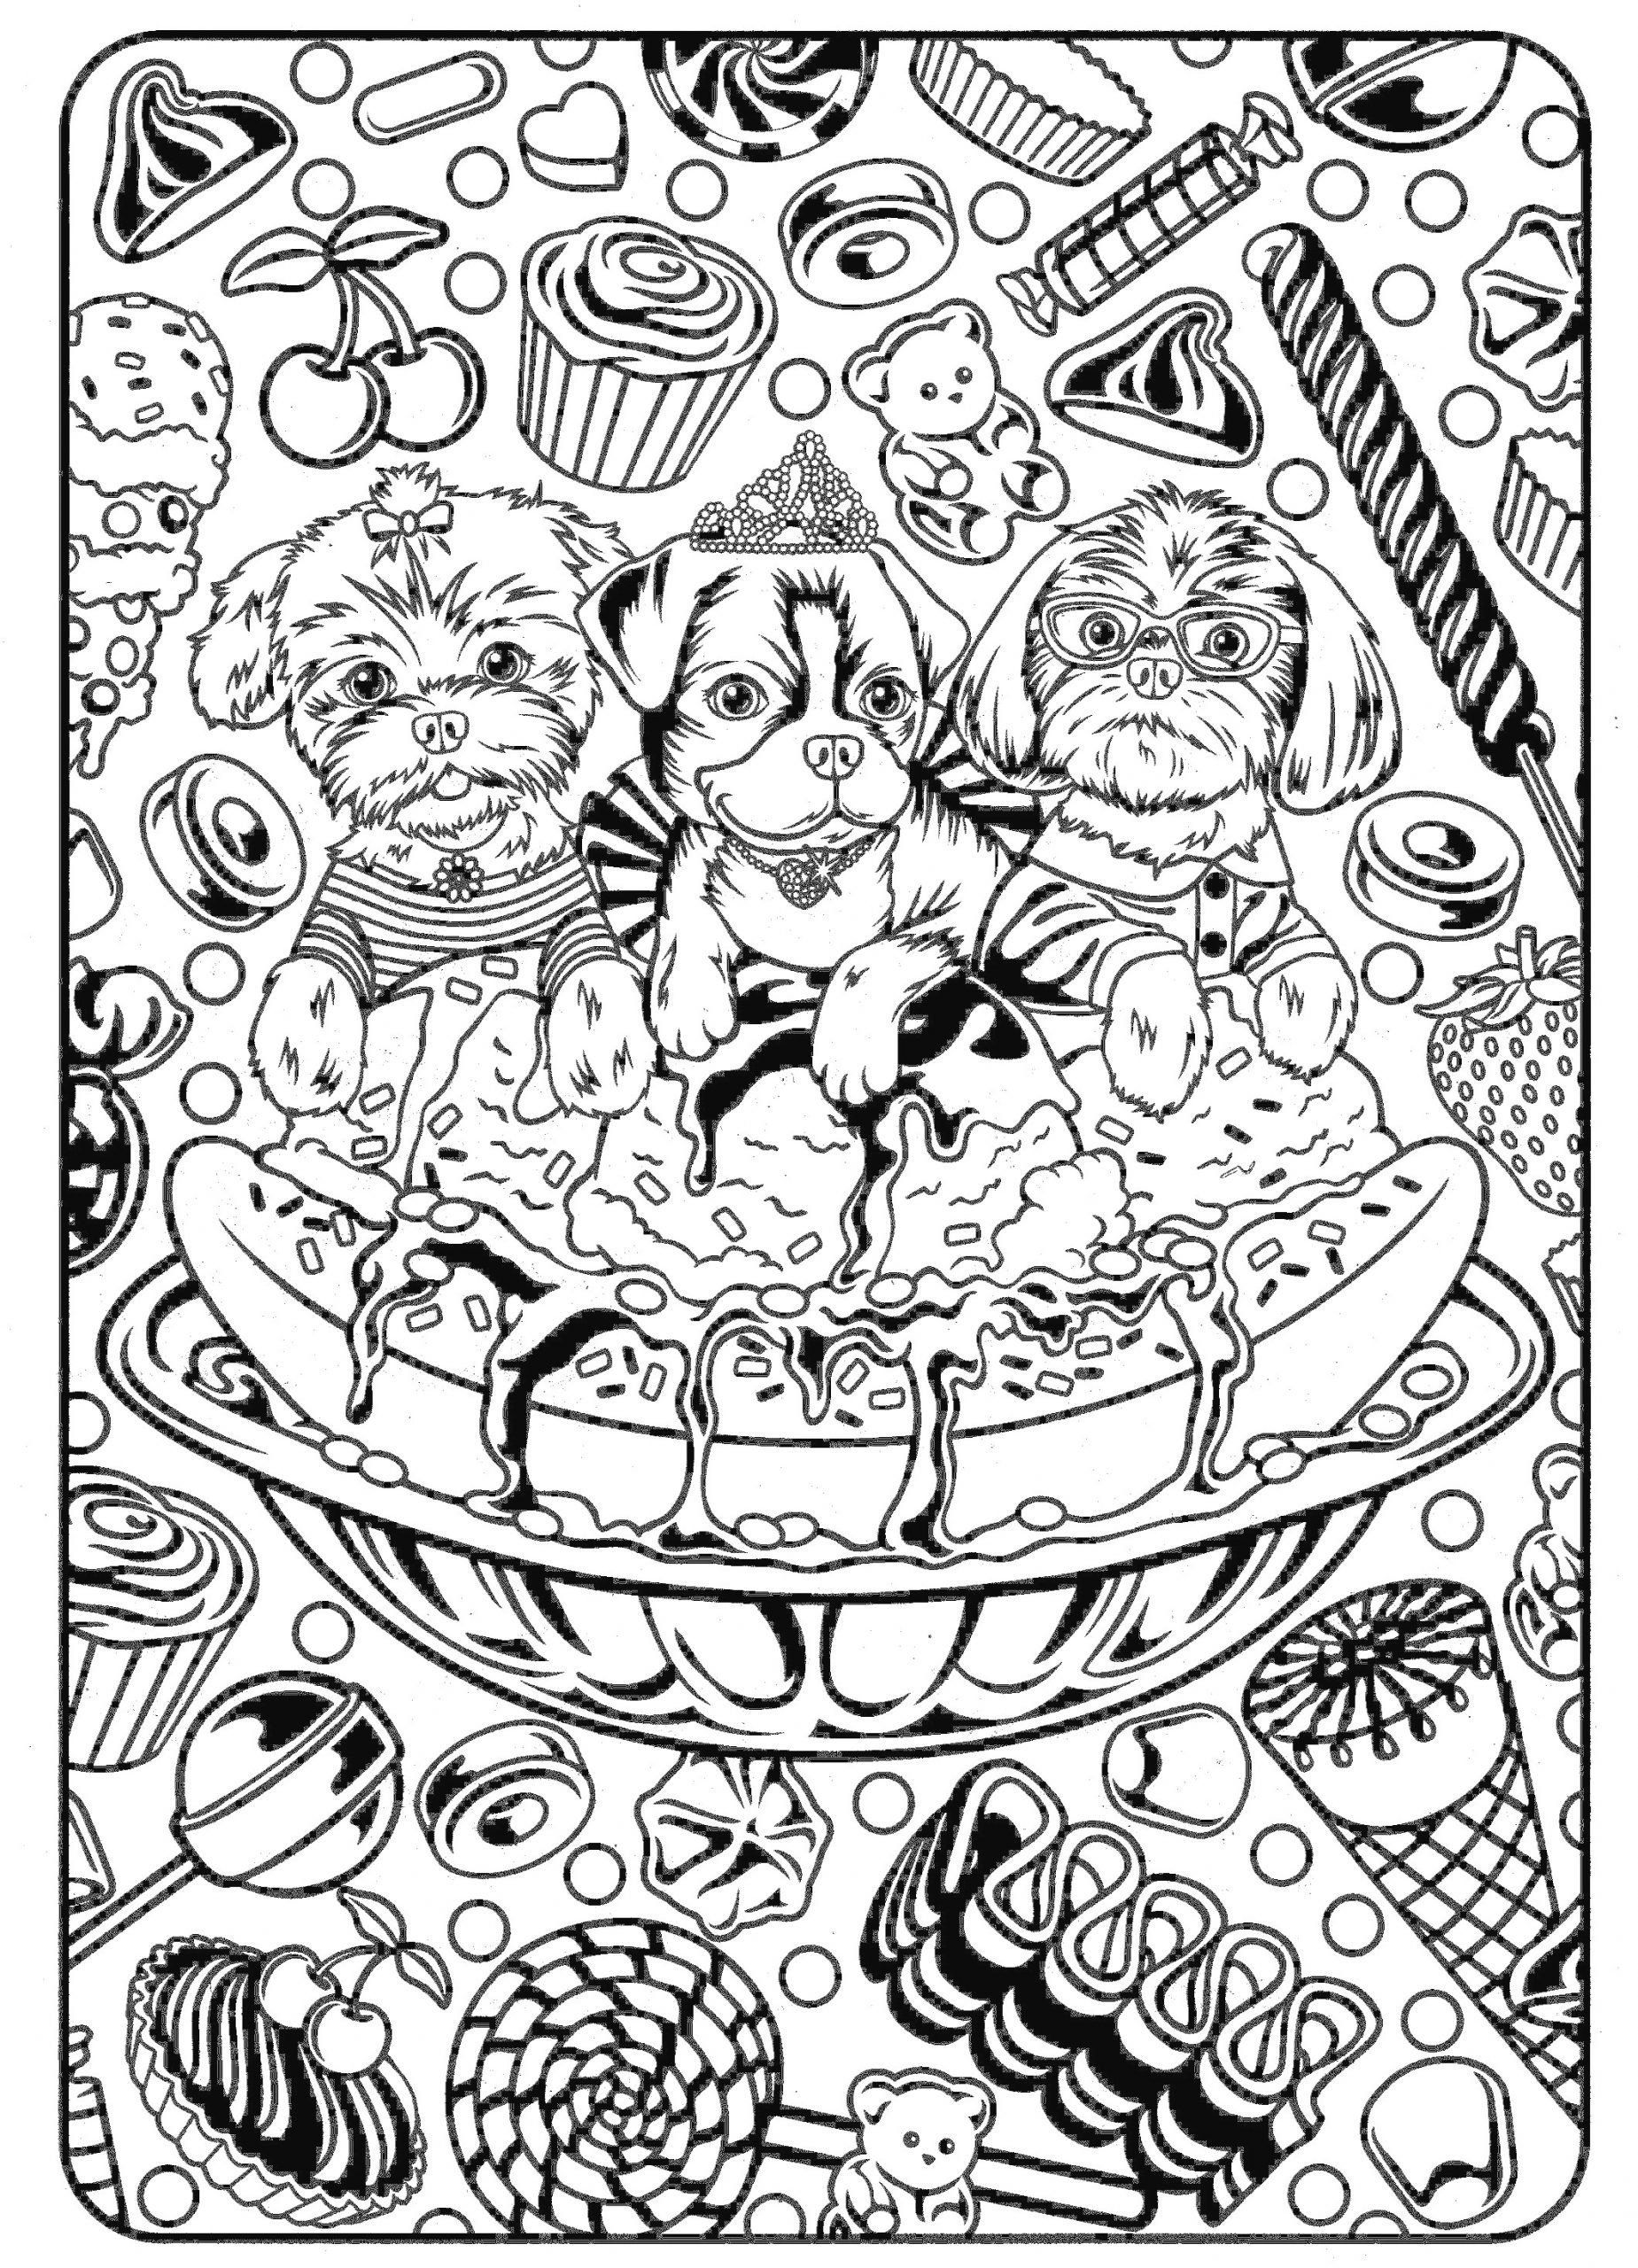 Coloring Games For Adults Online Interactive Coloring Pages For Adults Disney Spiderman Mario In 2020 Space Coloring Pages Pokemon Coloring Pages Fall Coloring Pages